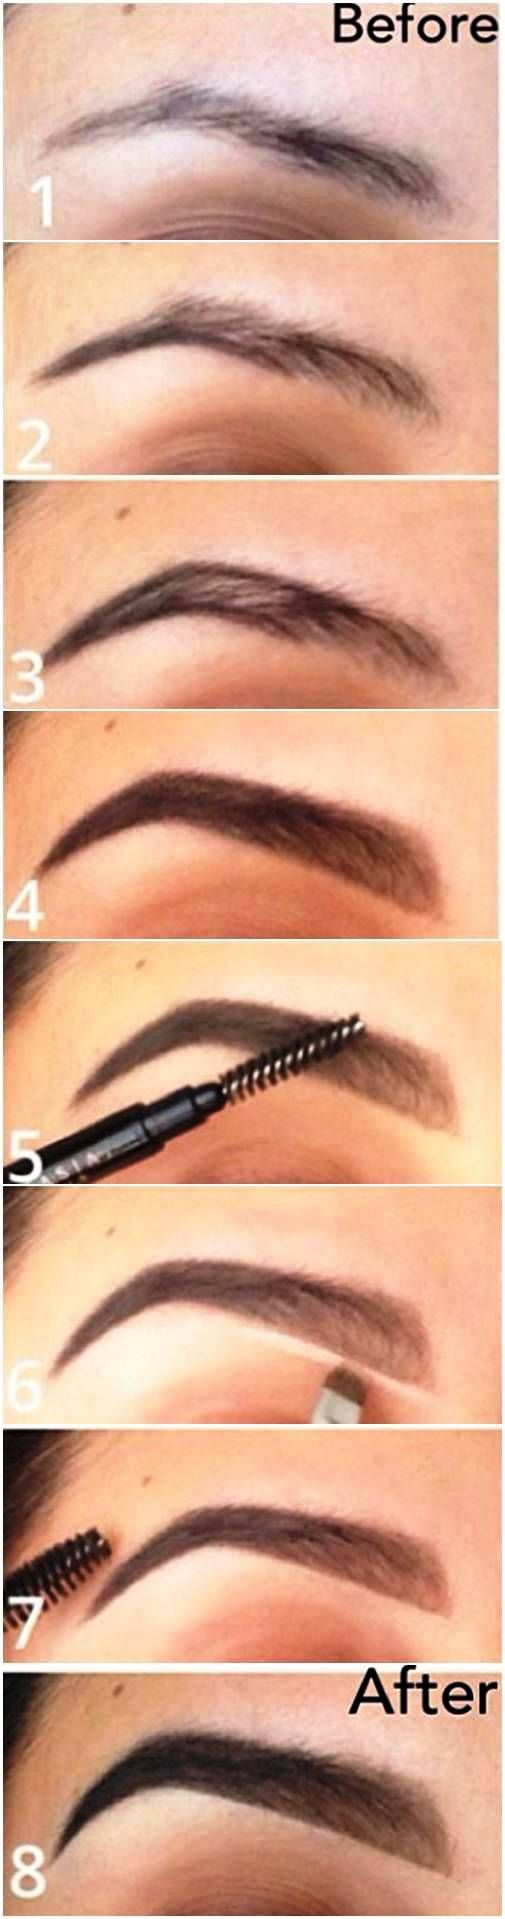 simple guide to perfect eyebrows maquillage beaut et sourcils. Black Bedroom Furniture Sets. Home Design Ideas